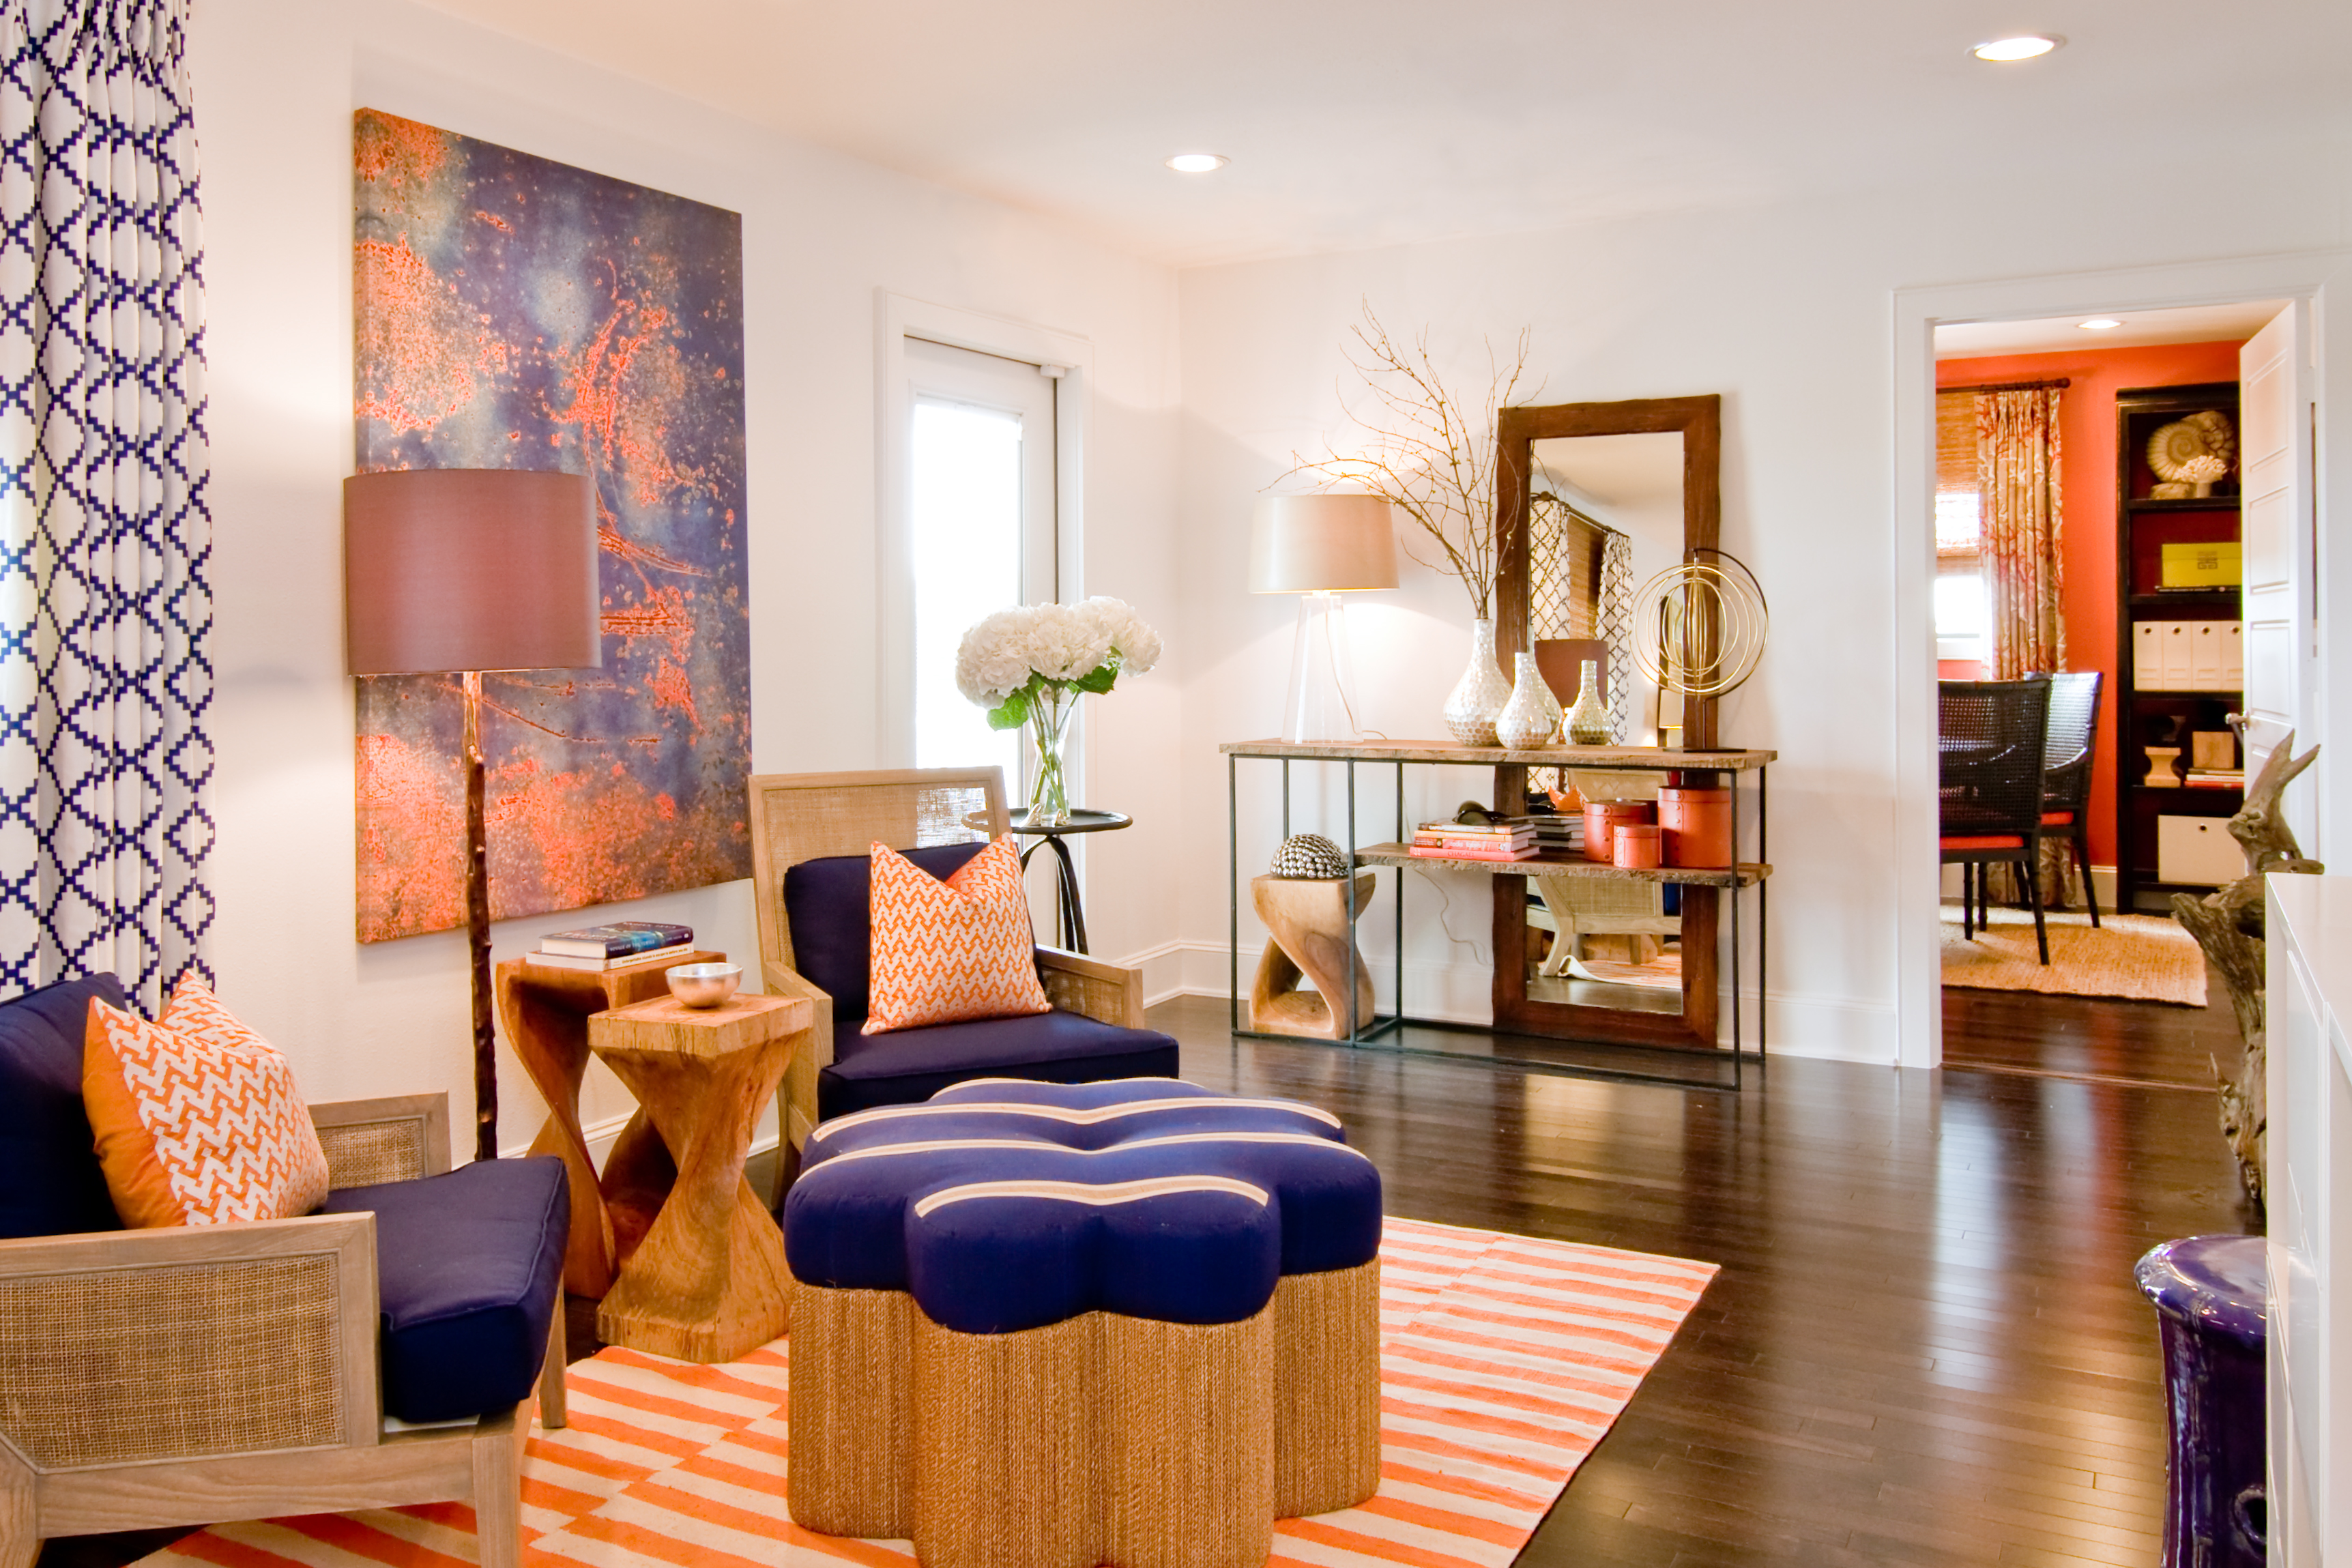 Four easy ways to update your living room for 2014 huffpost - Living room paint colors for 2014 ...